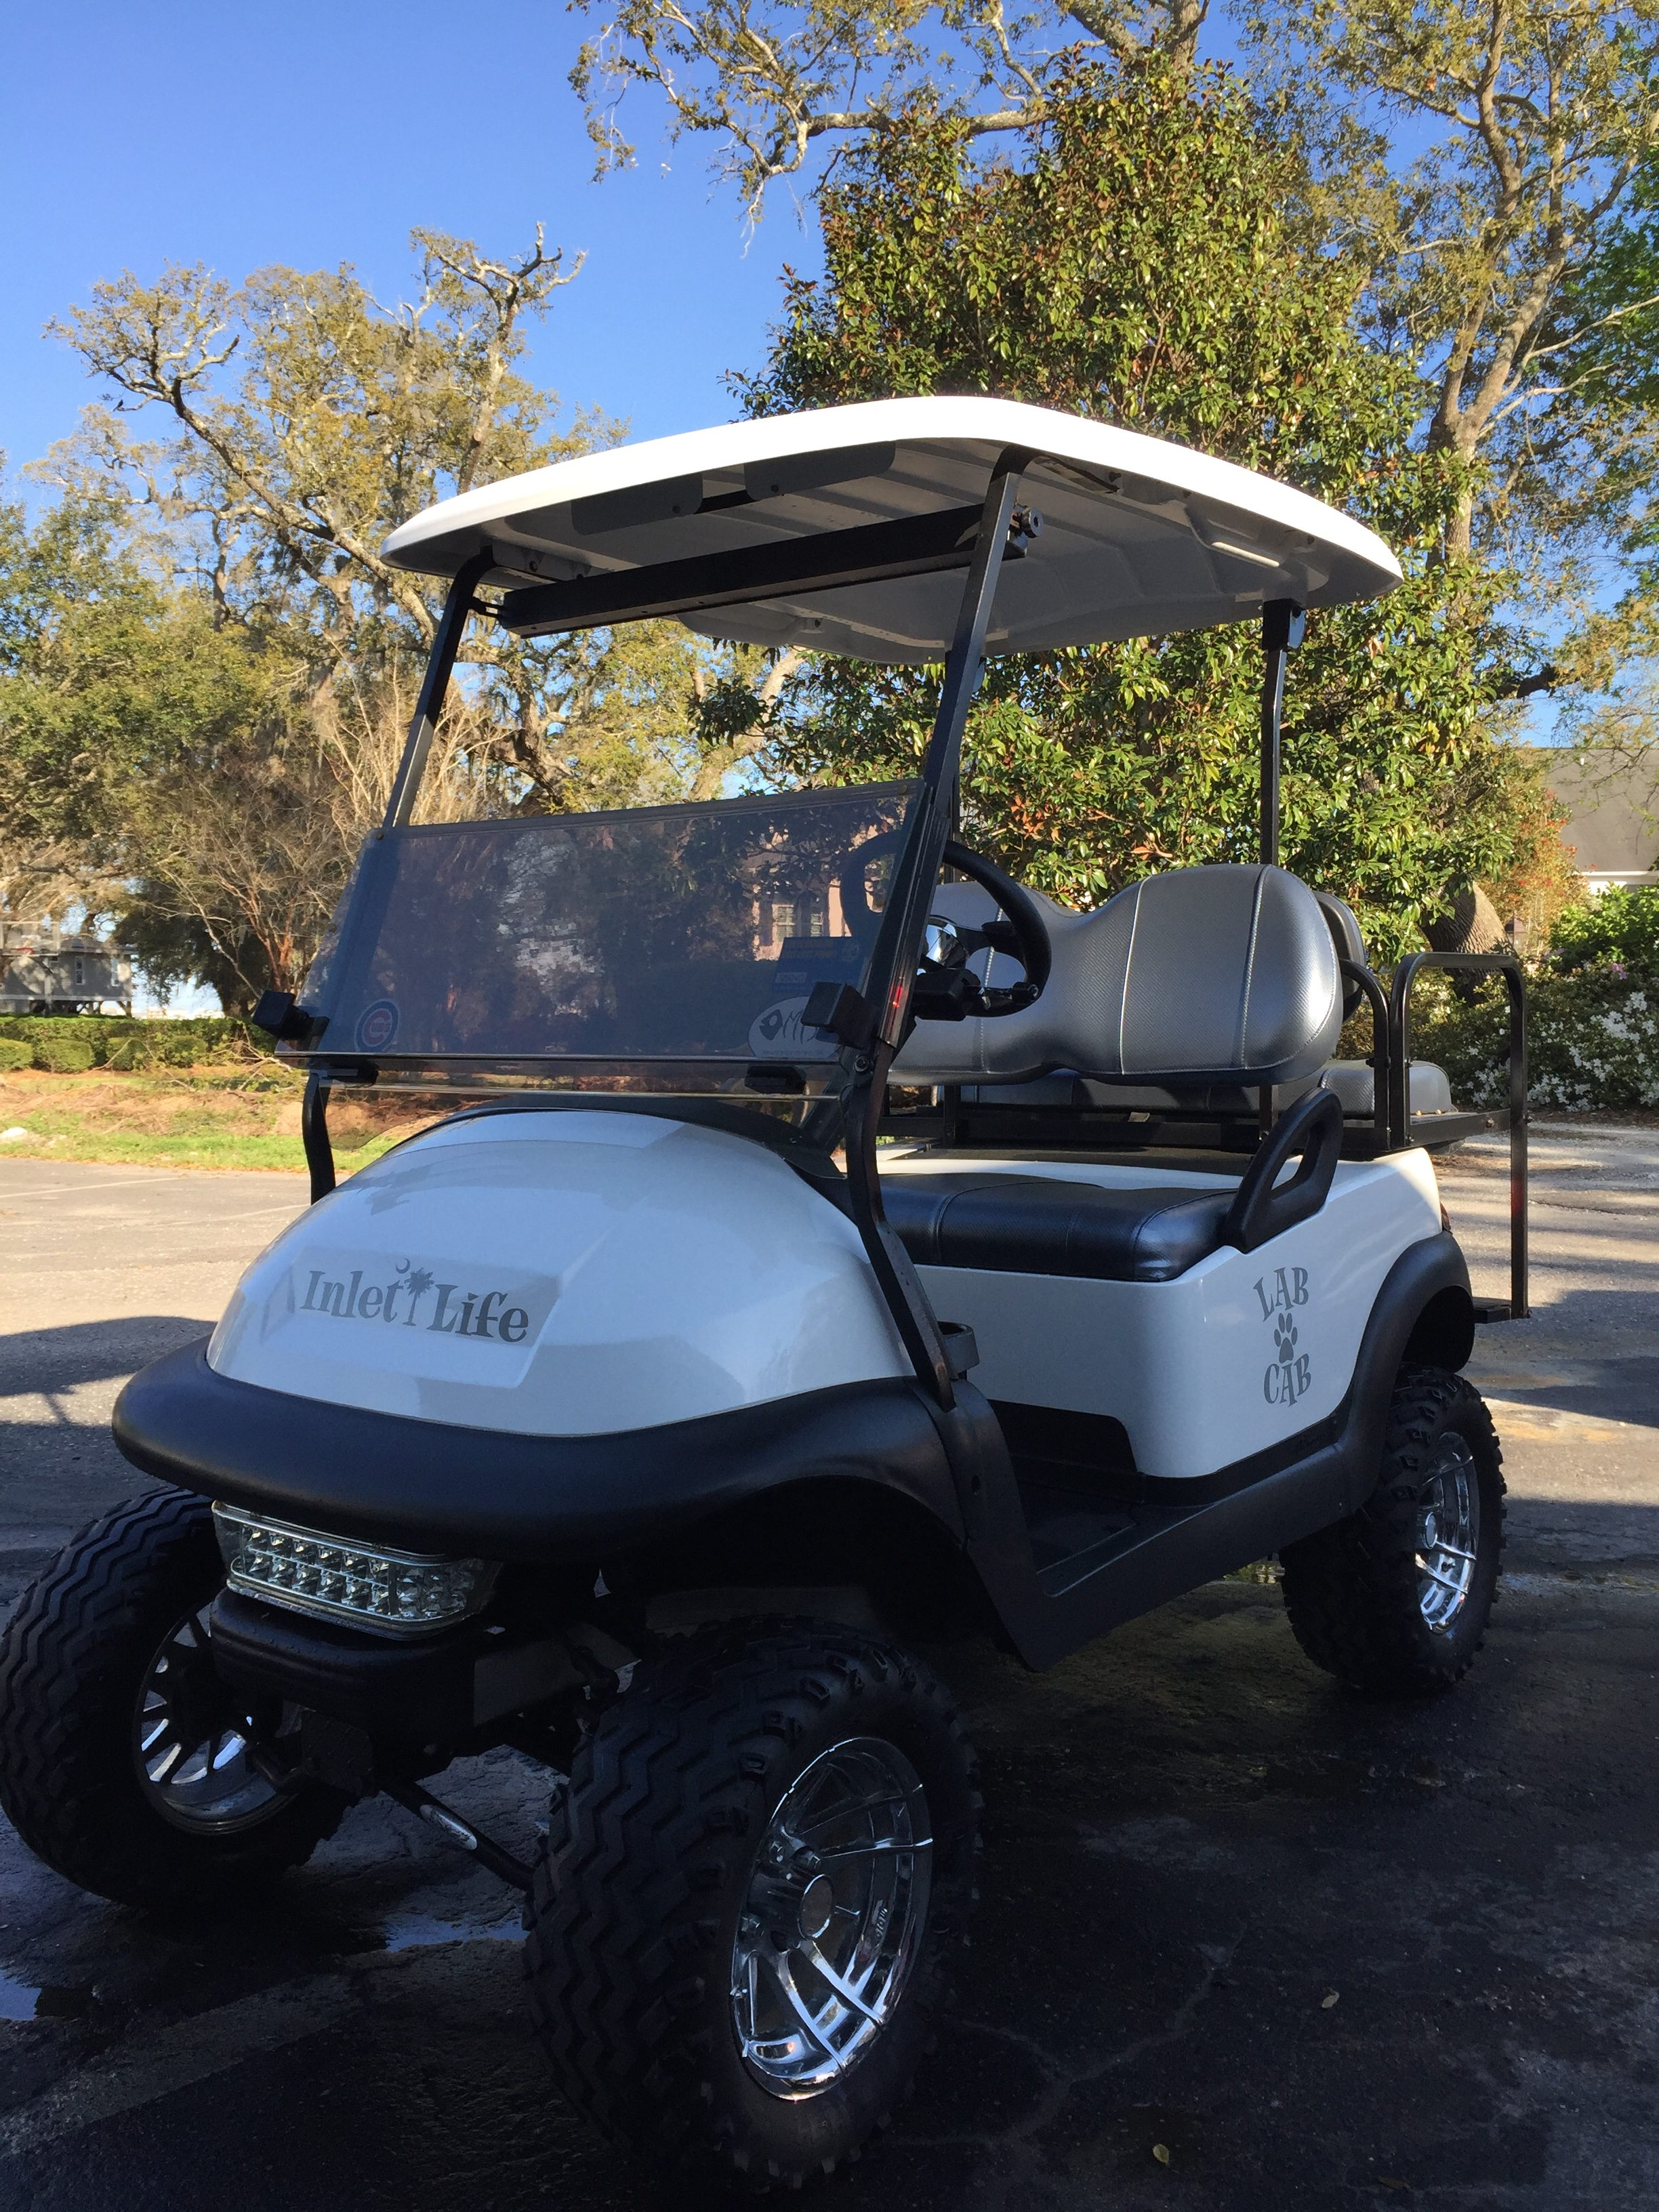 Coastal Carts Unlimited- Inlet Life Golf Cart